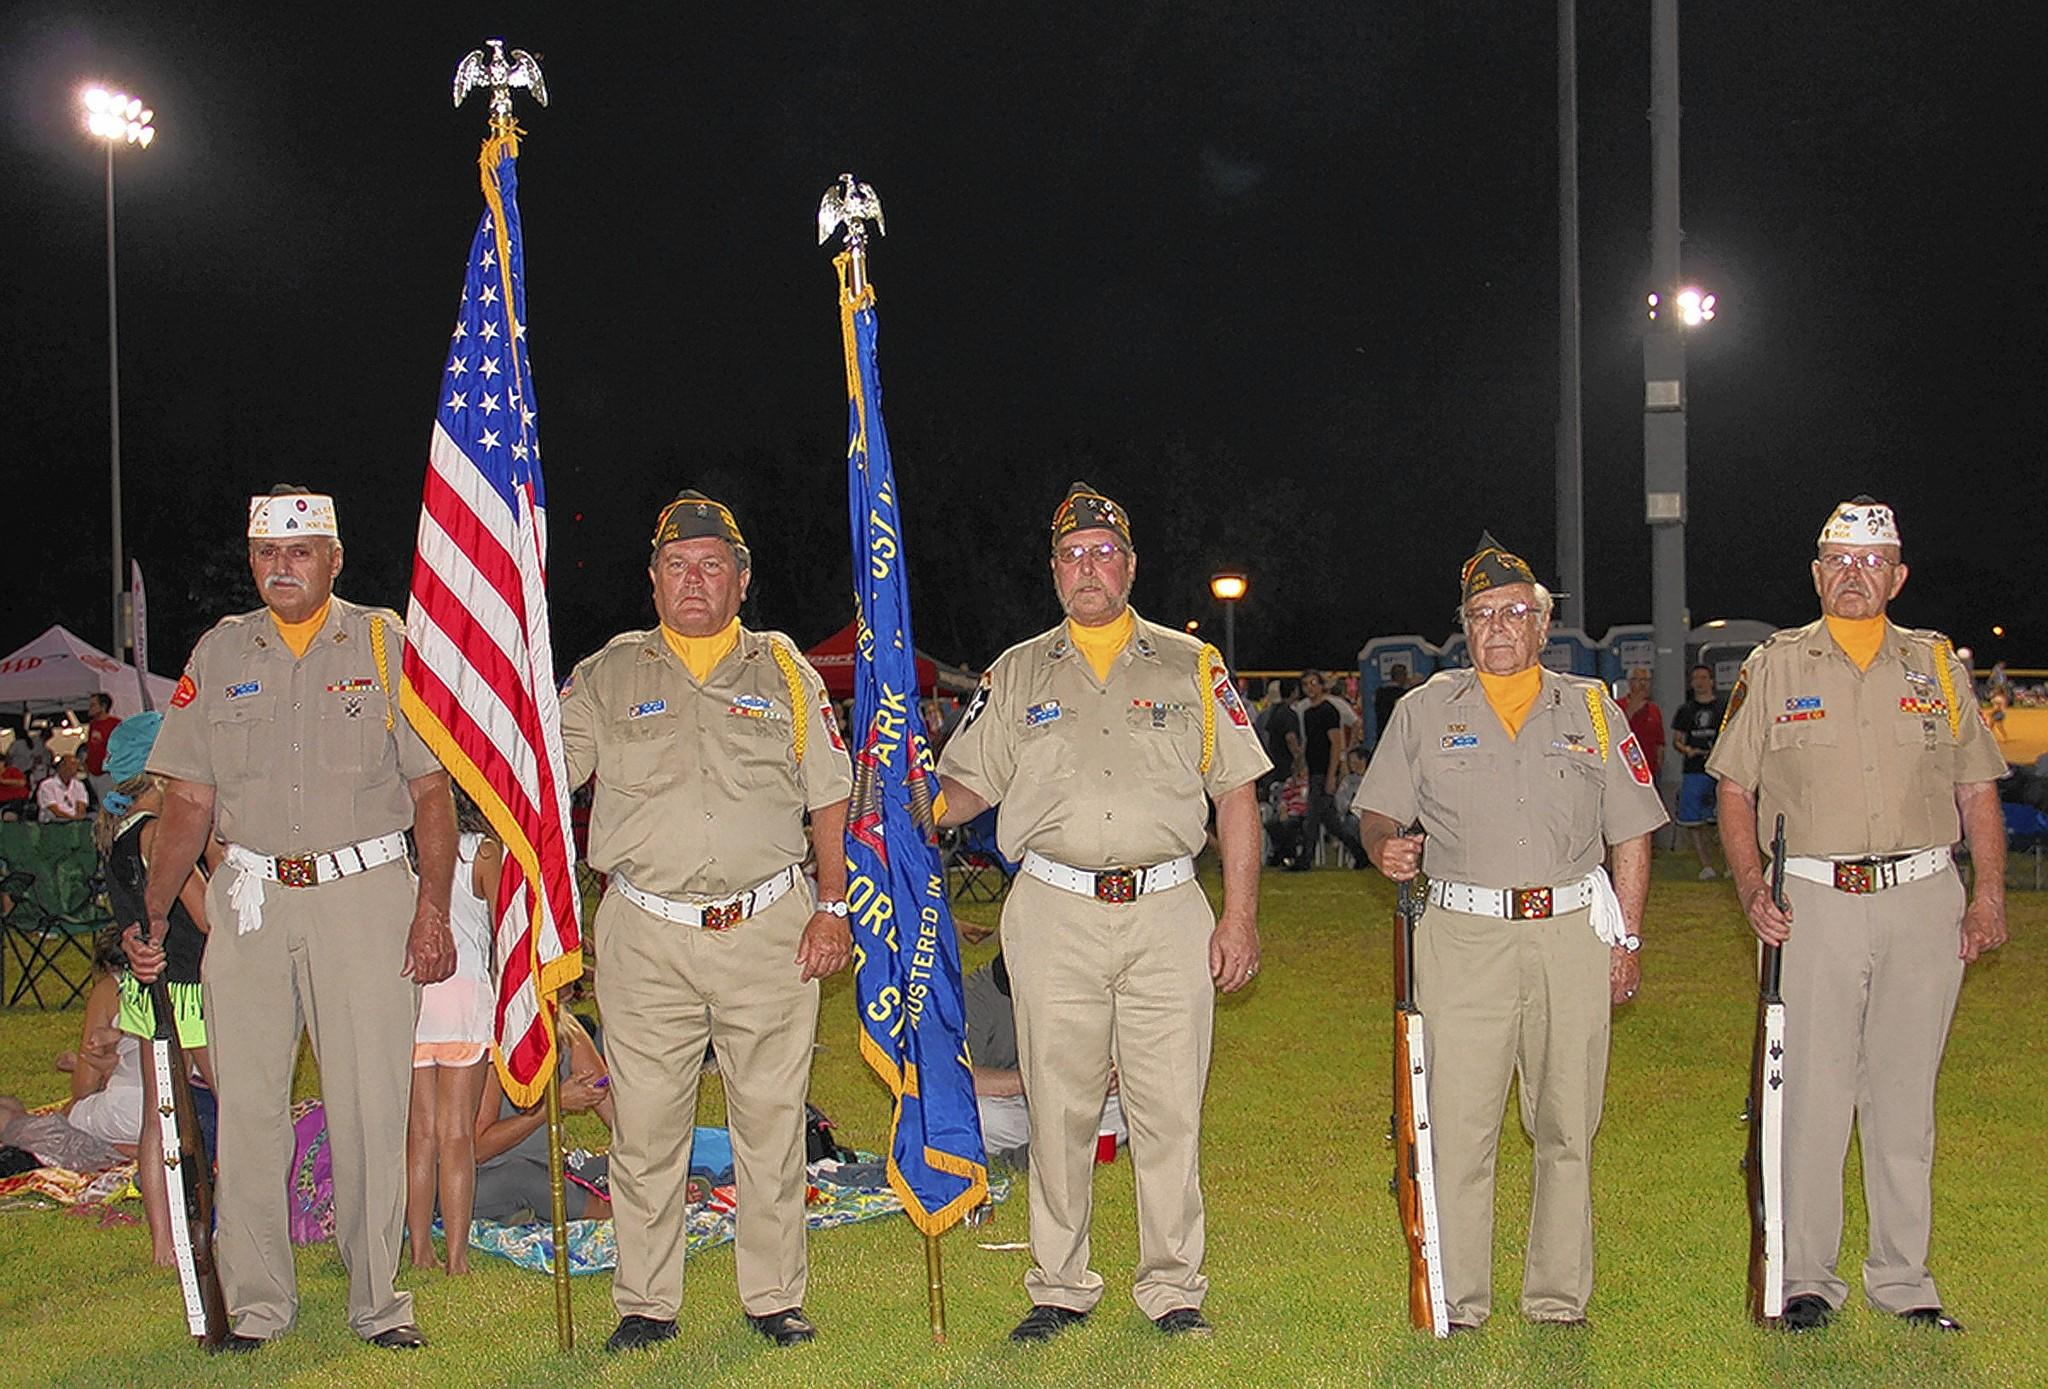 Members of the Orland-Palos Reber-Tesmond VFW Post 2604 present colors each year at the Village of Orland Park's Independence Day Celebration.